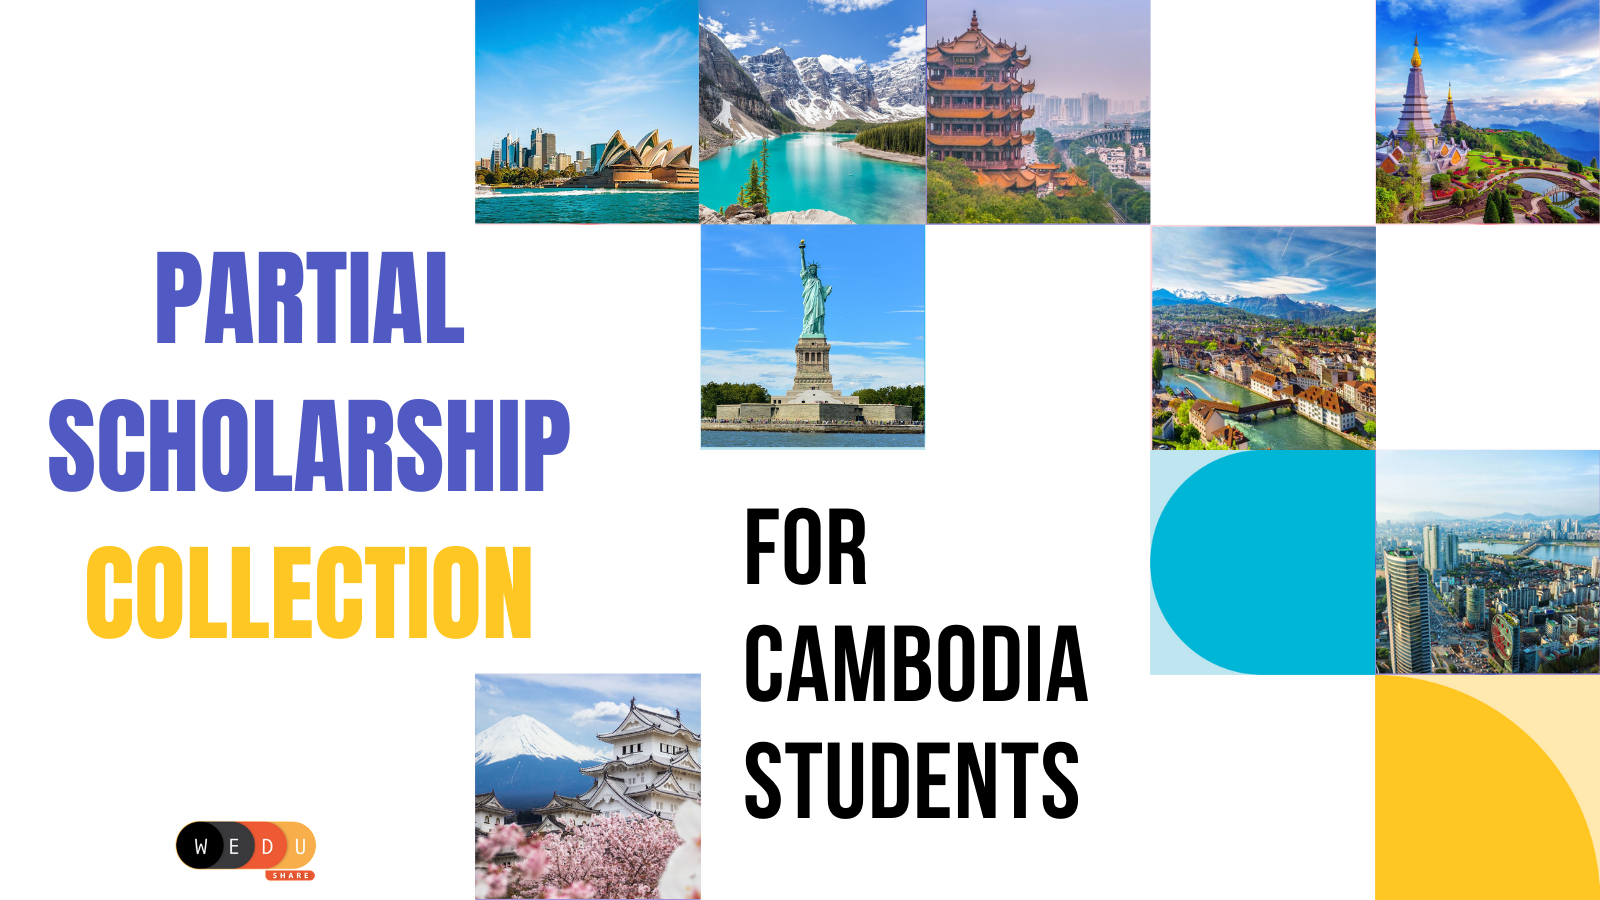 Partial Scholarship Collection for Cambodian Students